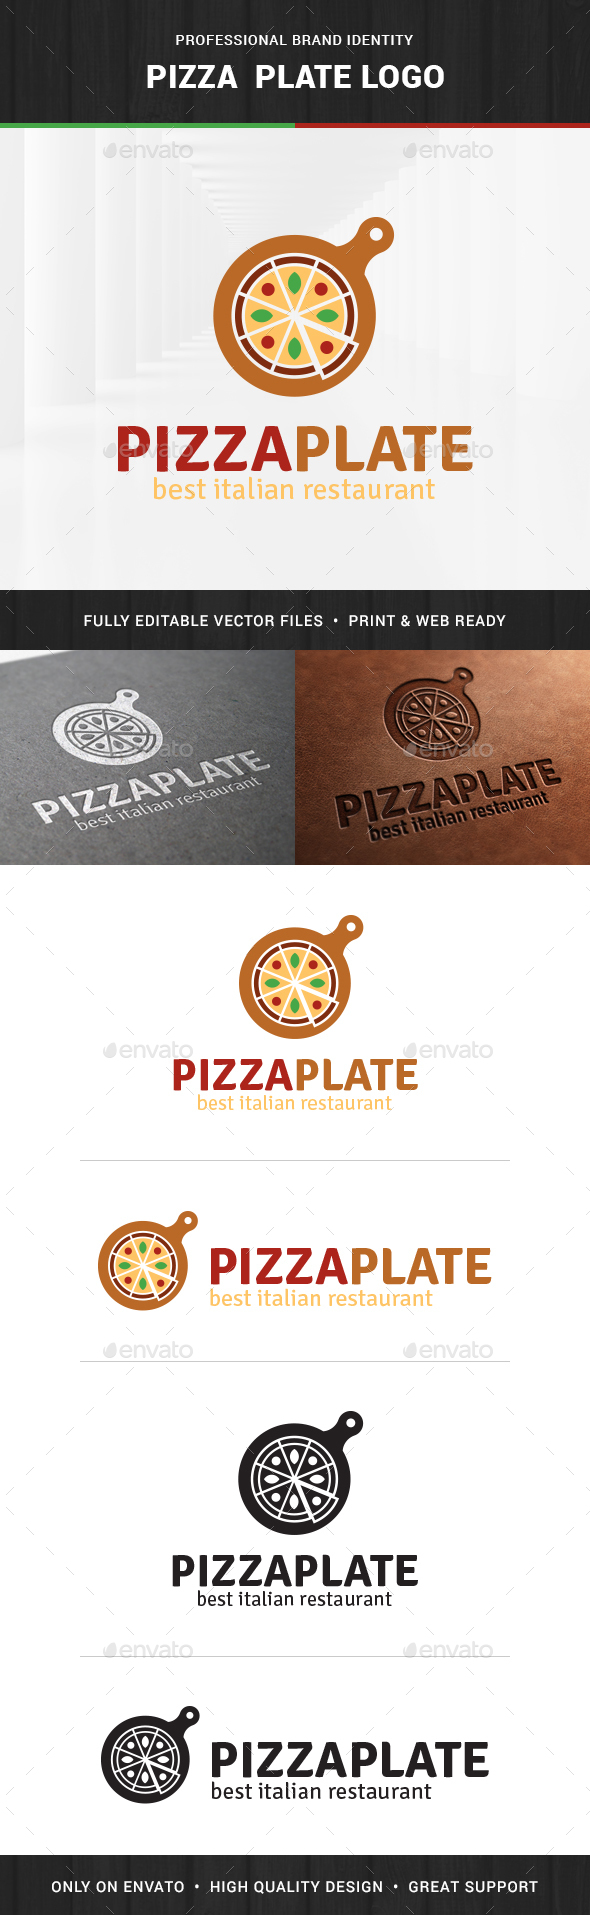 Pizza Plate Logo Template